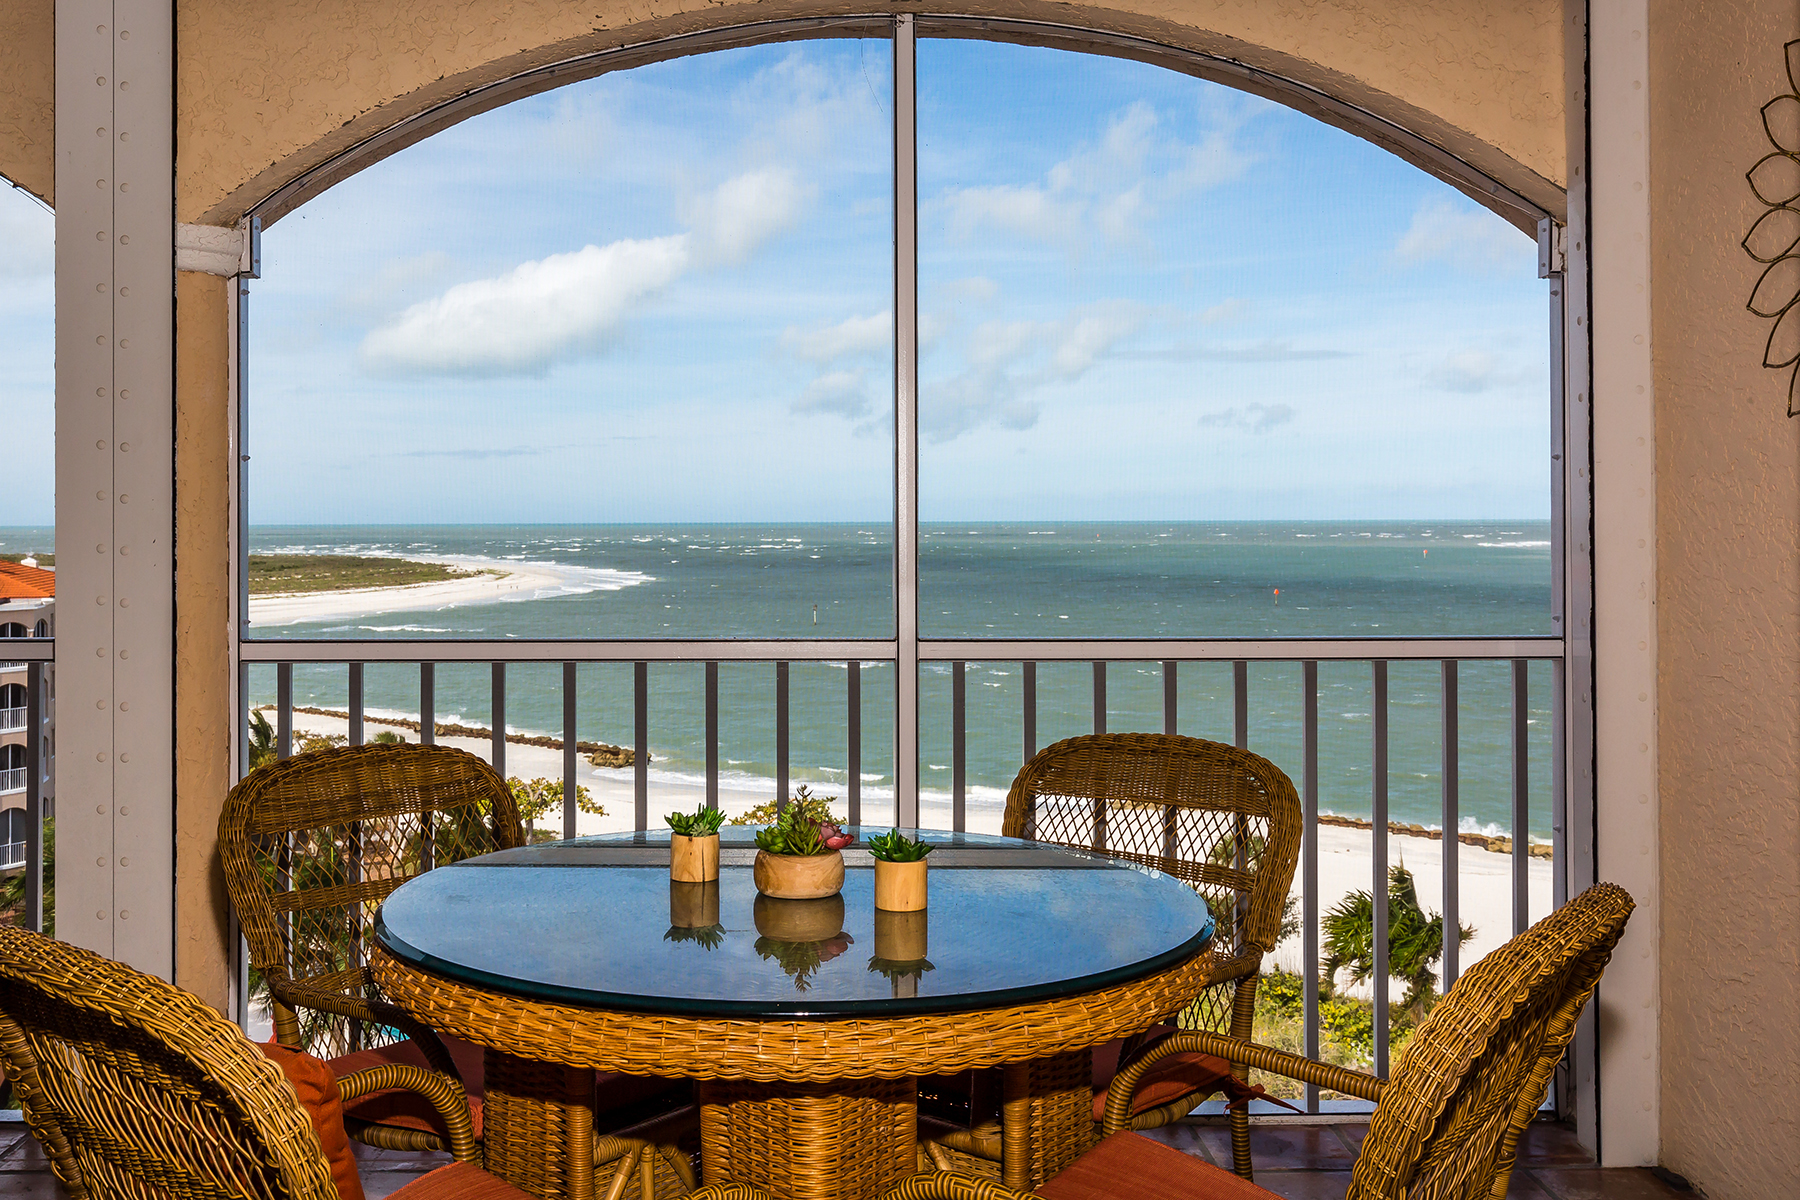 Condominium for Sale at HIDEAWAY BEACH 3000 Royal Marco Way PH-M, Marco Island, Florida 34145 United States